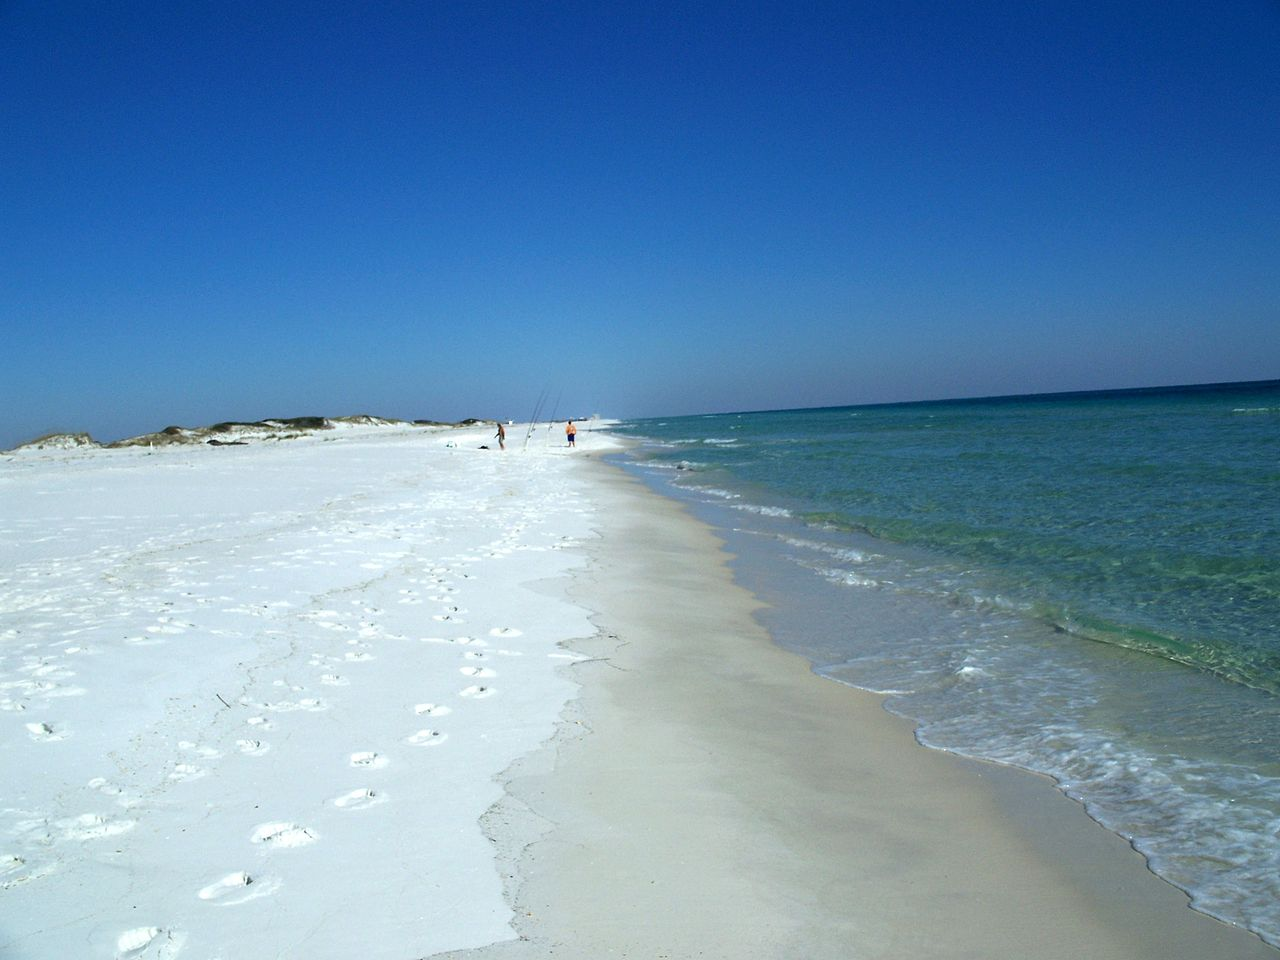 Attraction Place Of Emerald Coast That Draws The Tourist-Santa Rose Beach